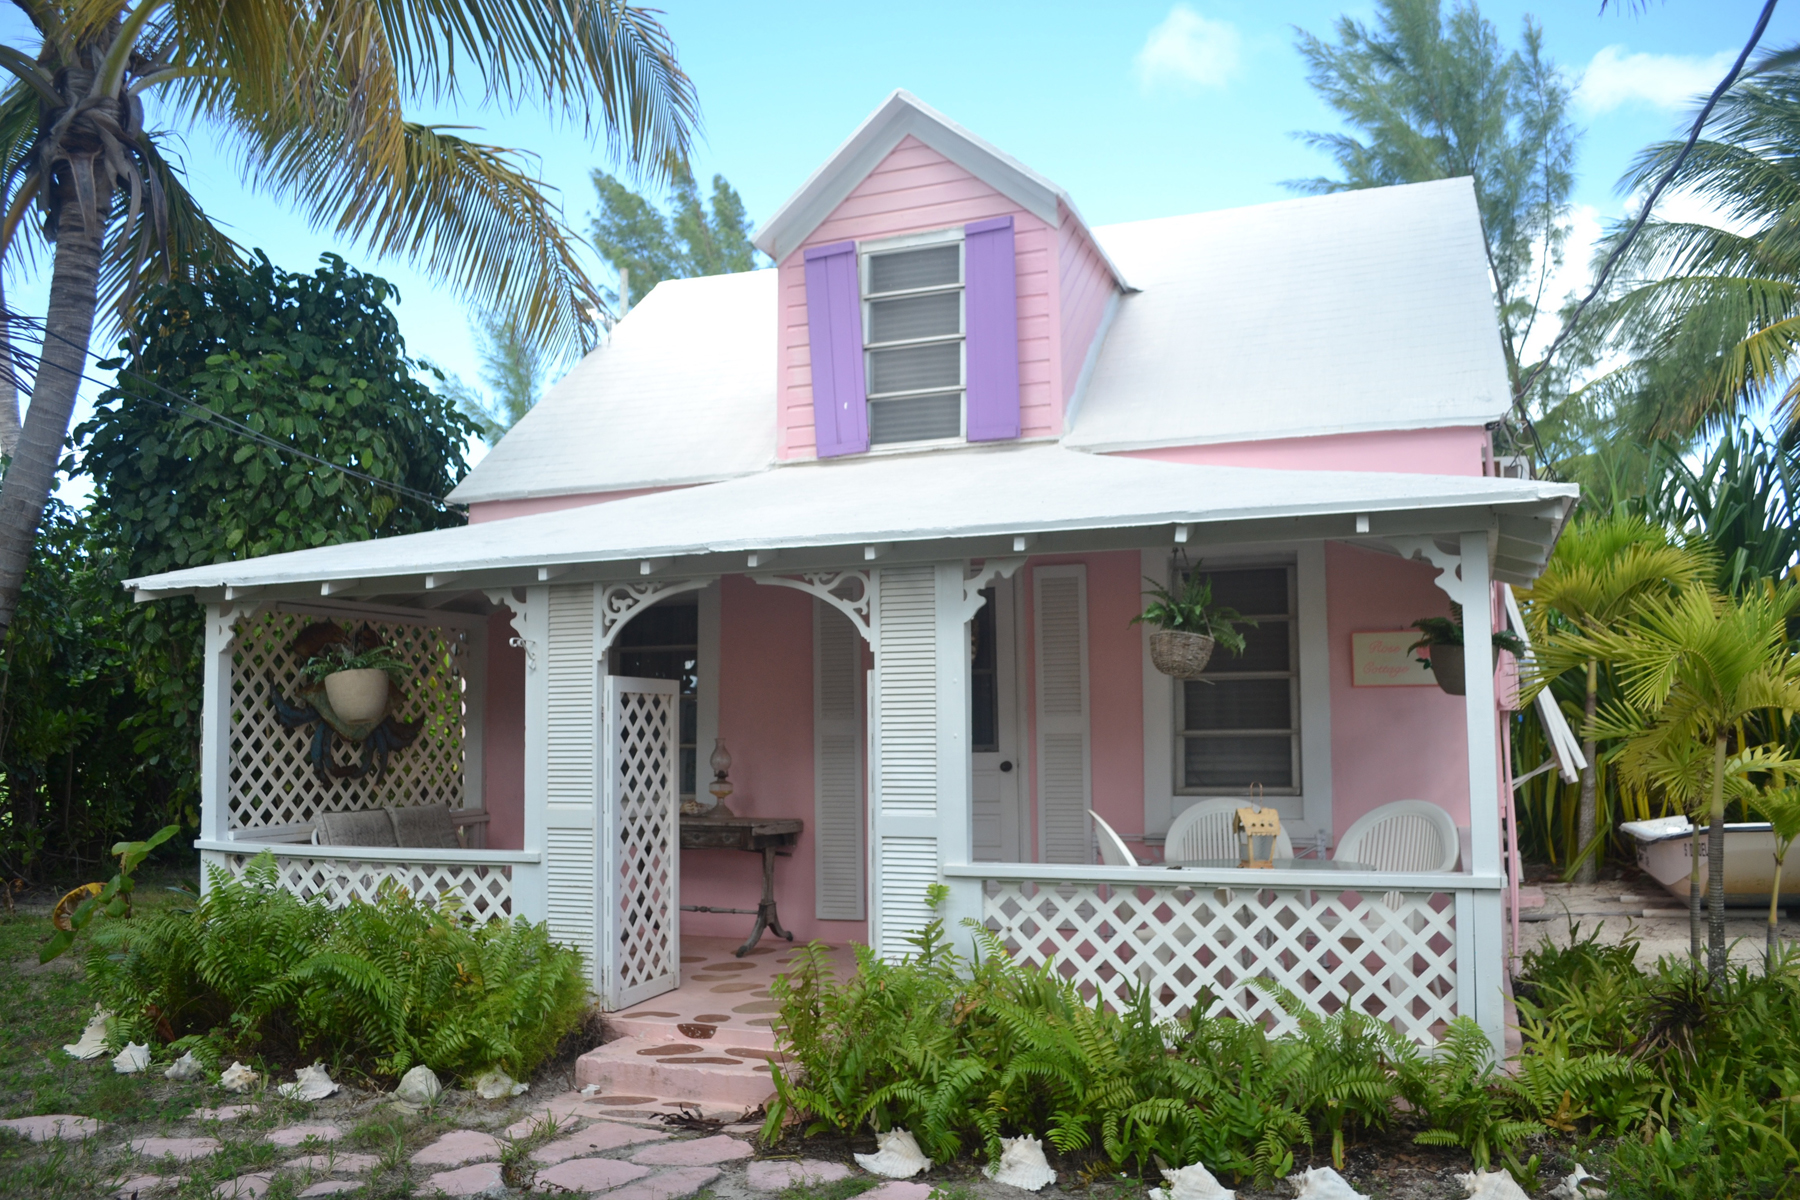 Tek Ailelik Ev için Satış at Rose Cottage Spanish Wells, Eleuthera, Bahamalar